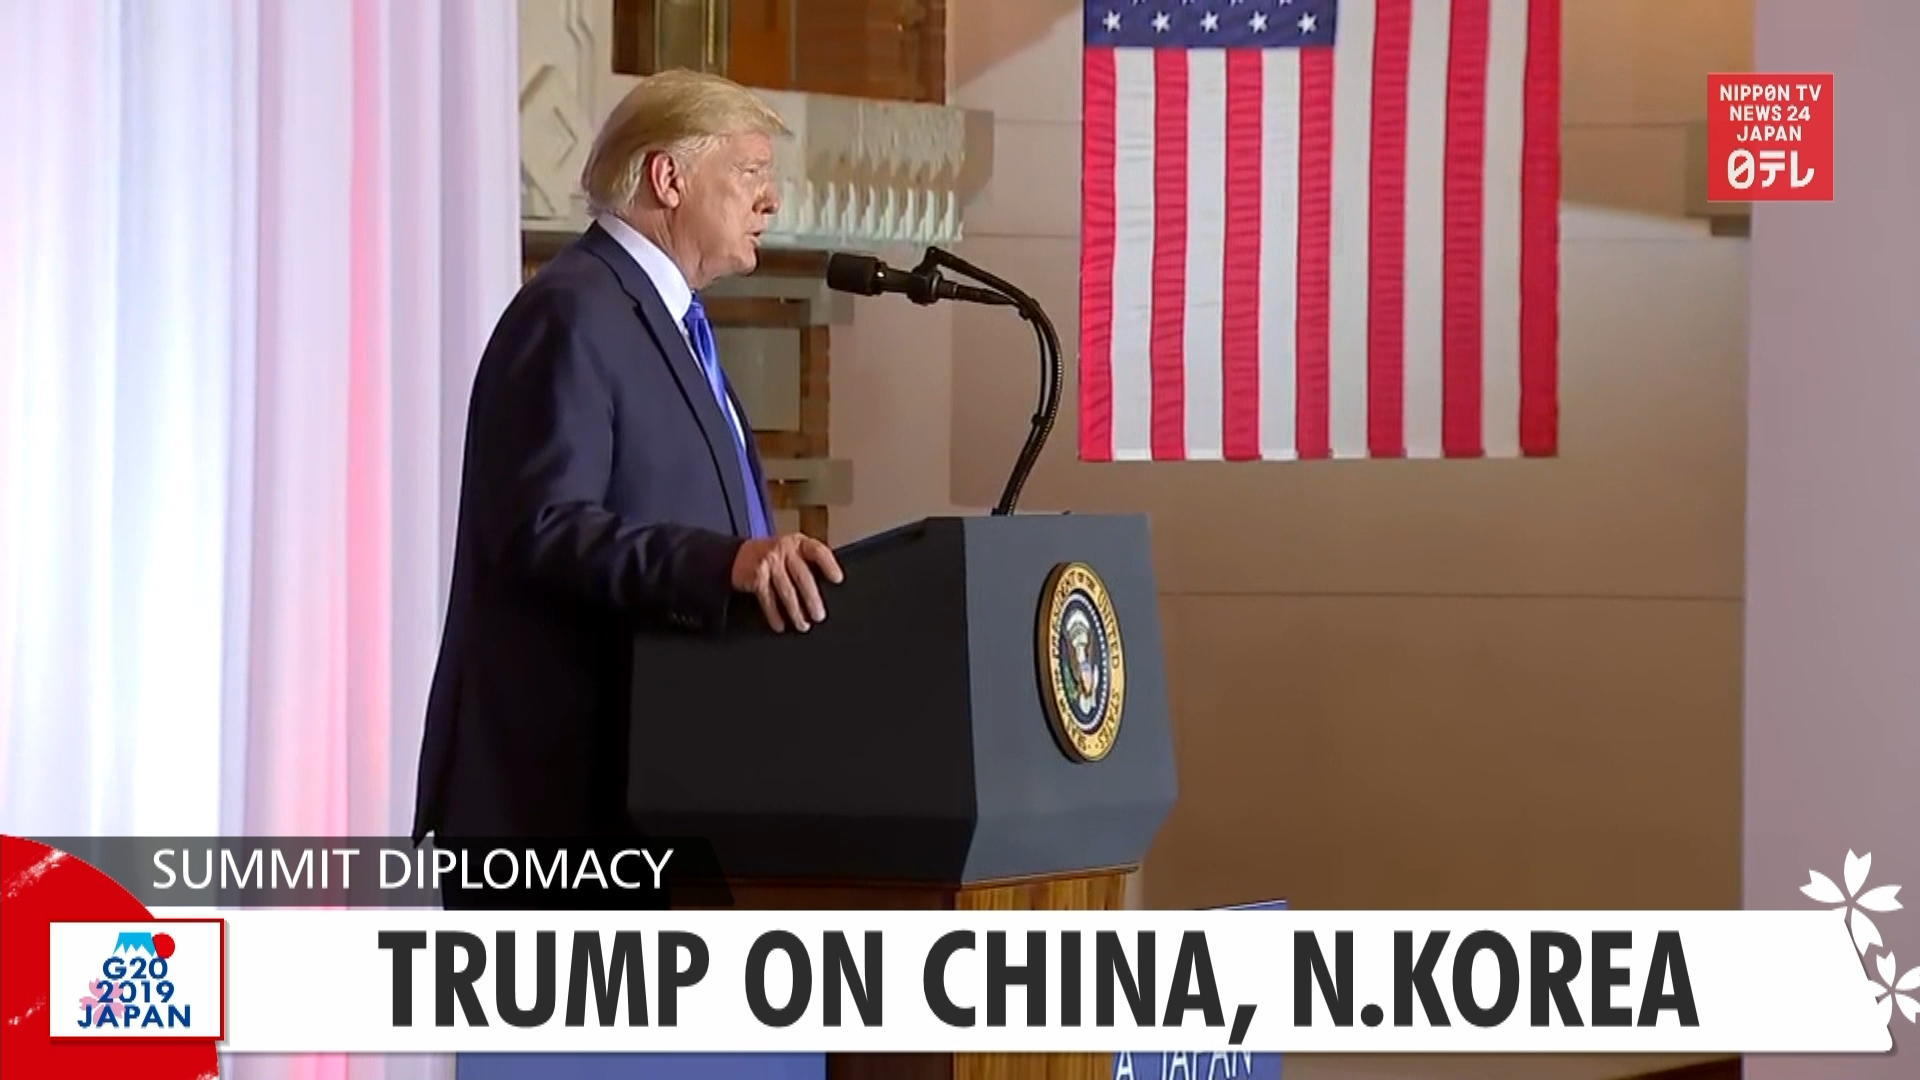 G20: Trump on China, N.Korea